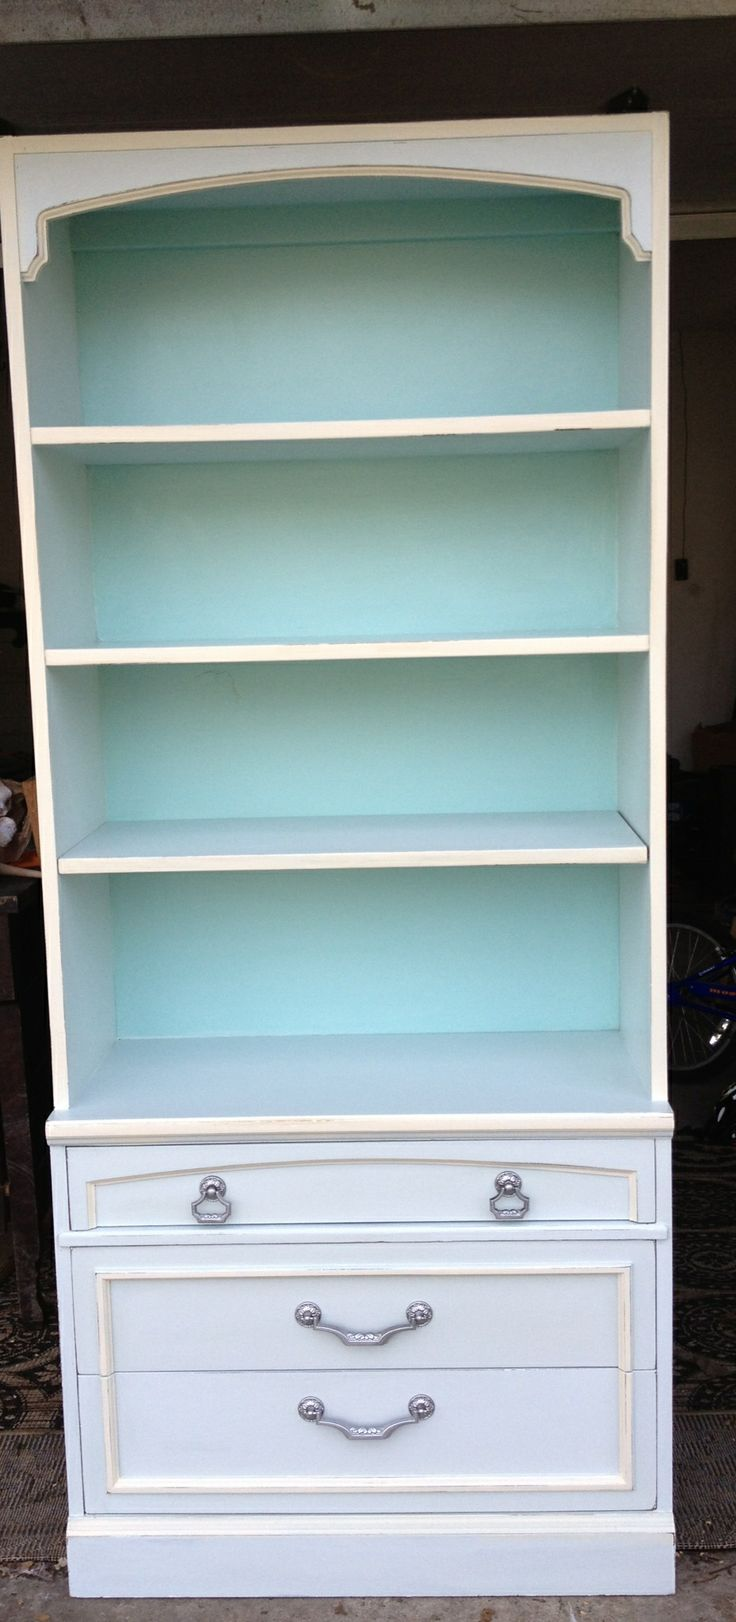 Turquoise / French country painted bookcase https://www.facebook.com/Thepaintedcrowe